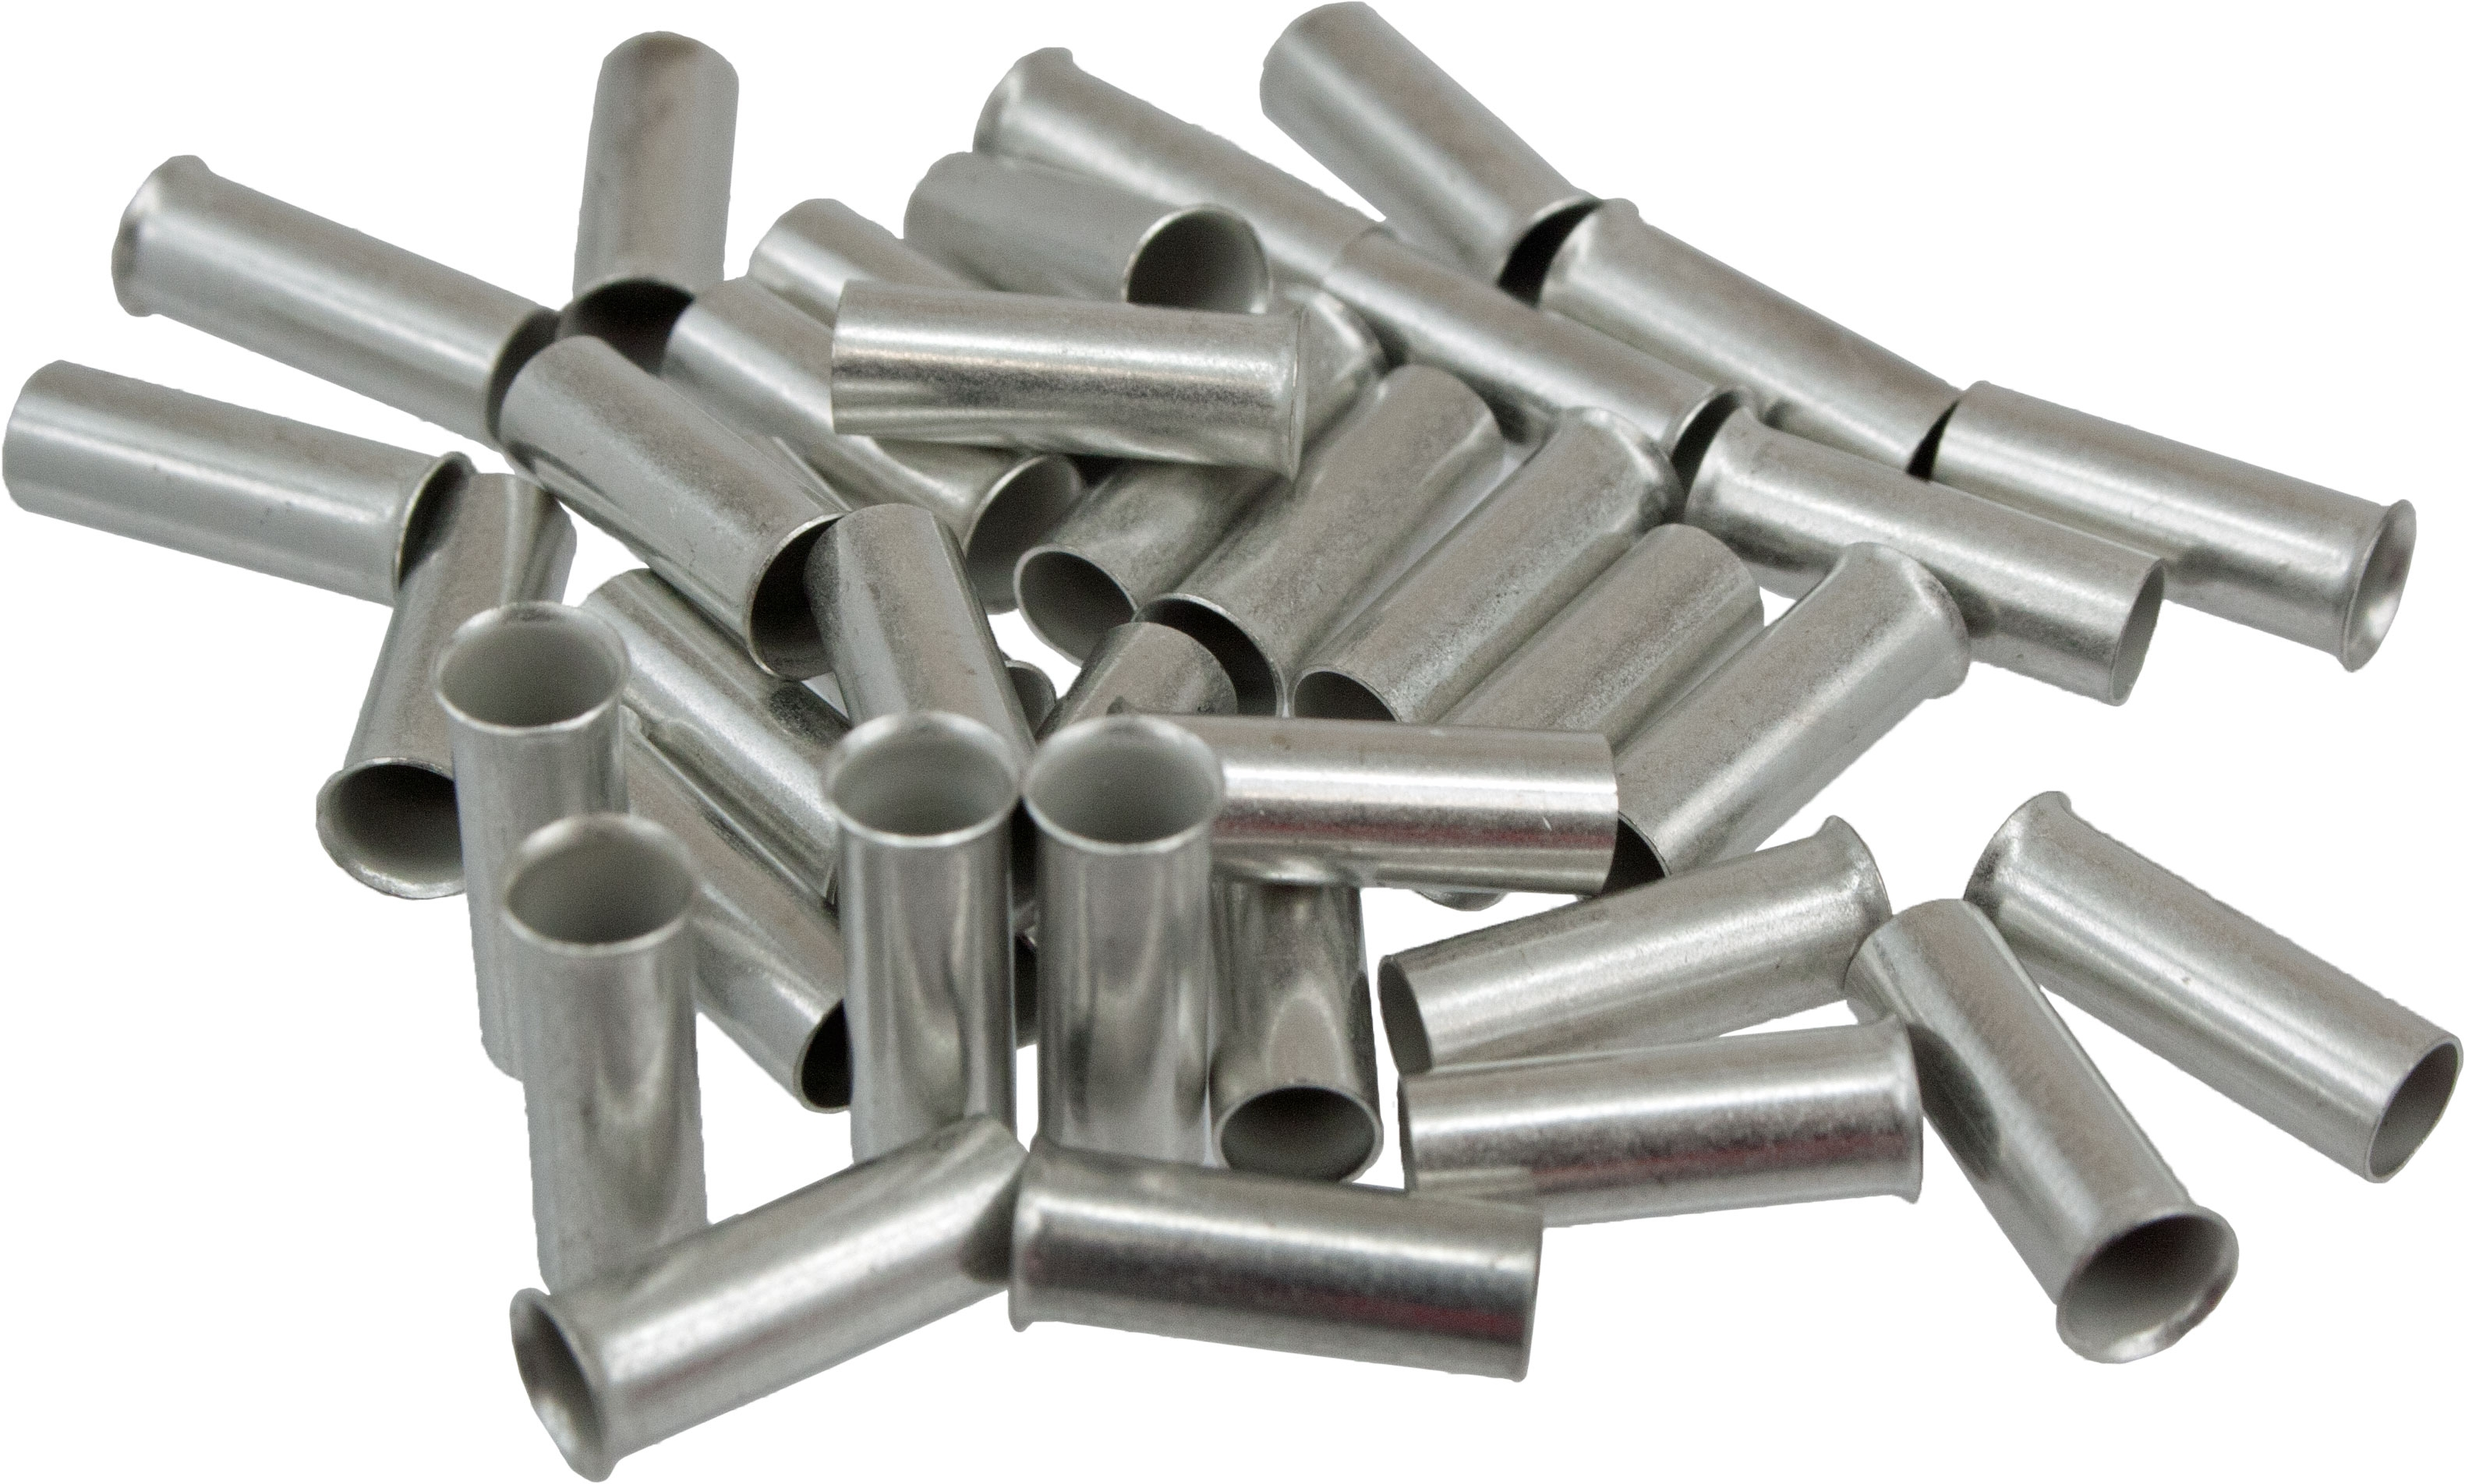 10 Awg Non-Insulated Wire Ferrules | FERN-10-12B | ElecDirect